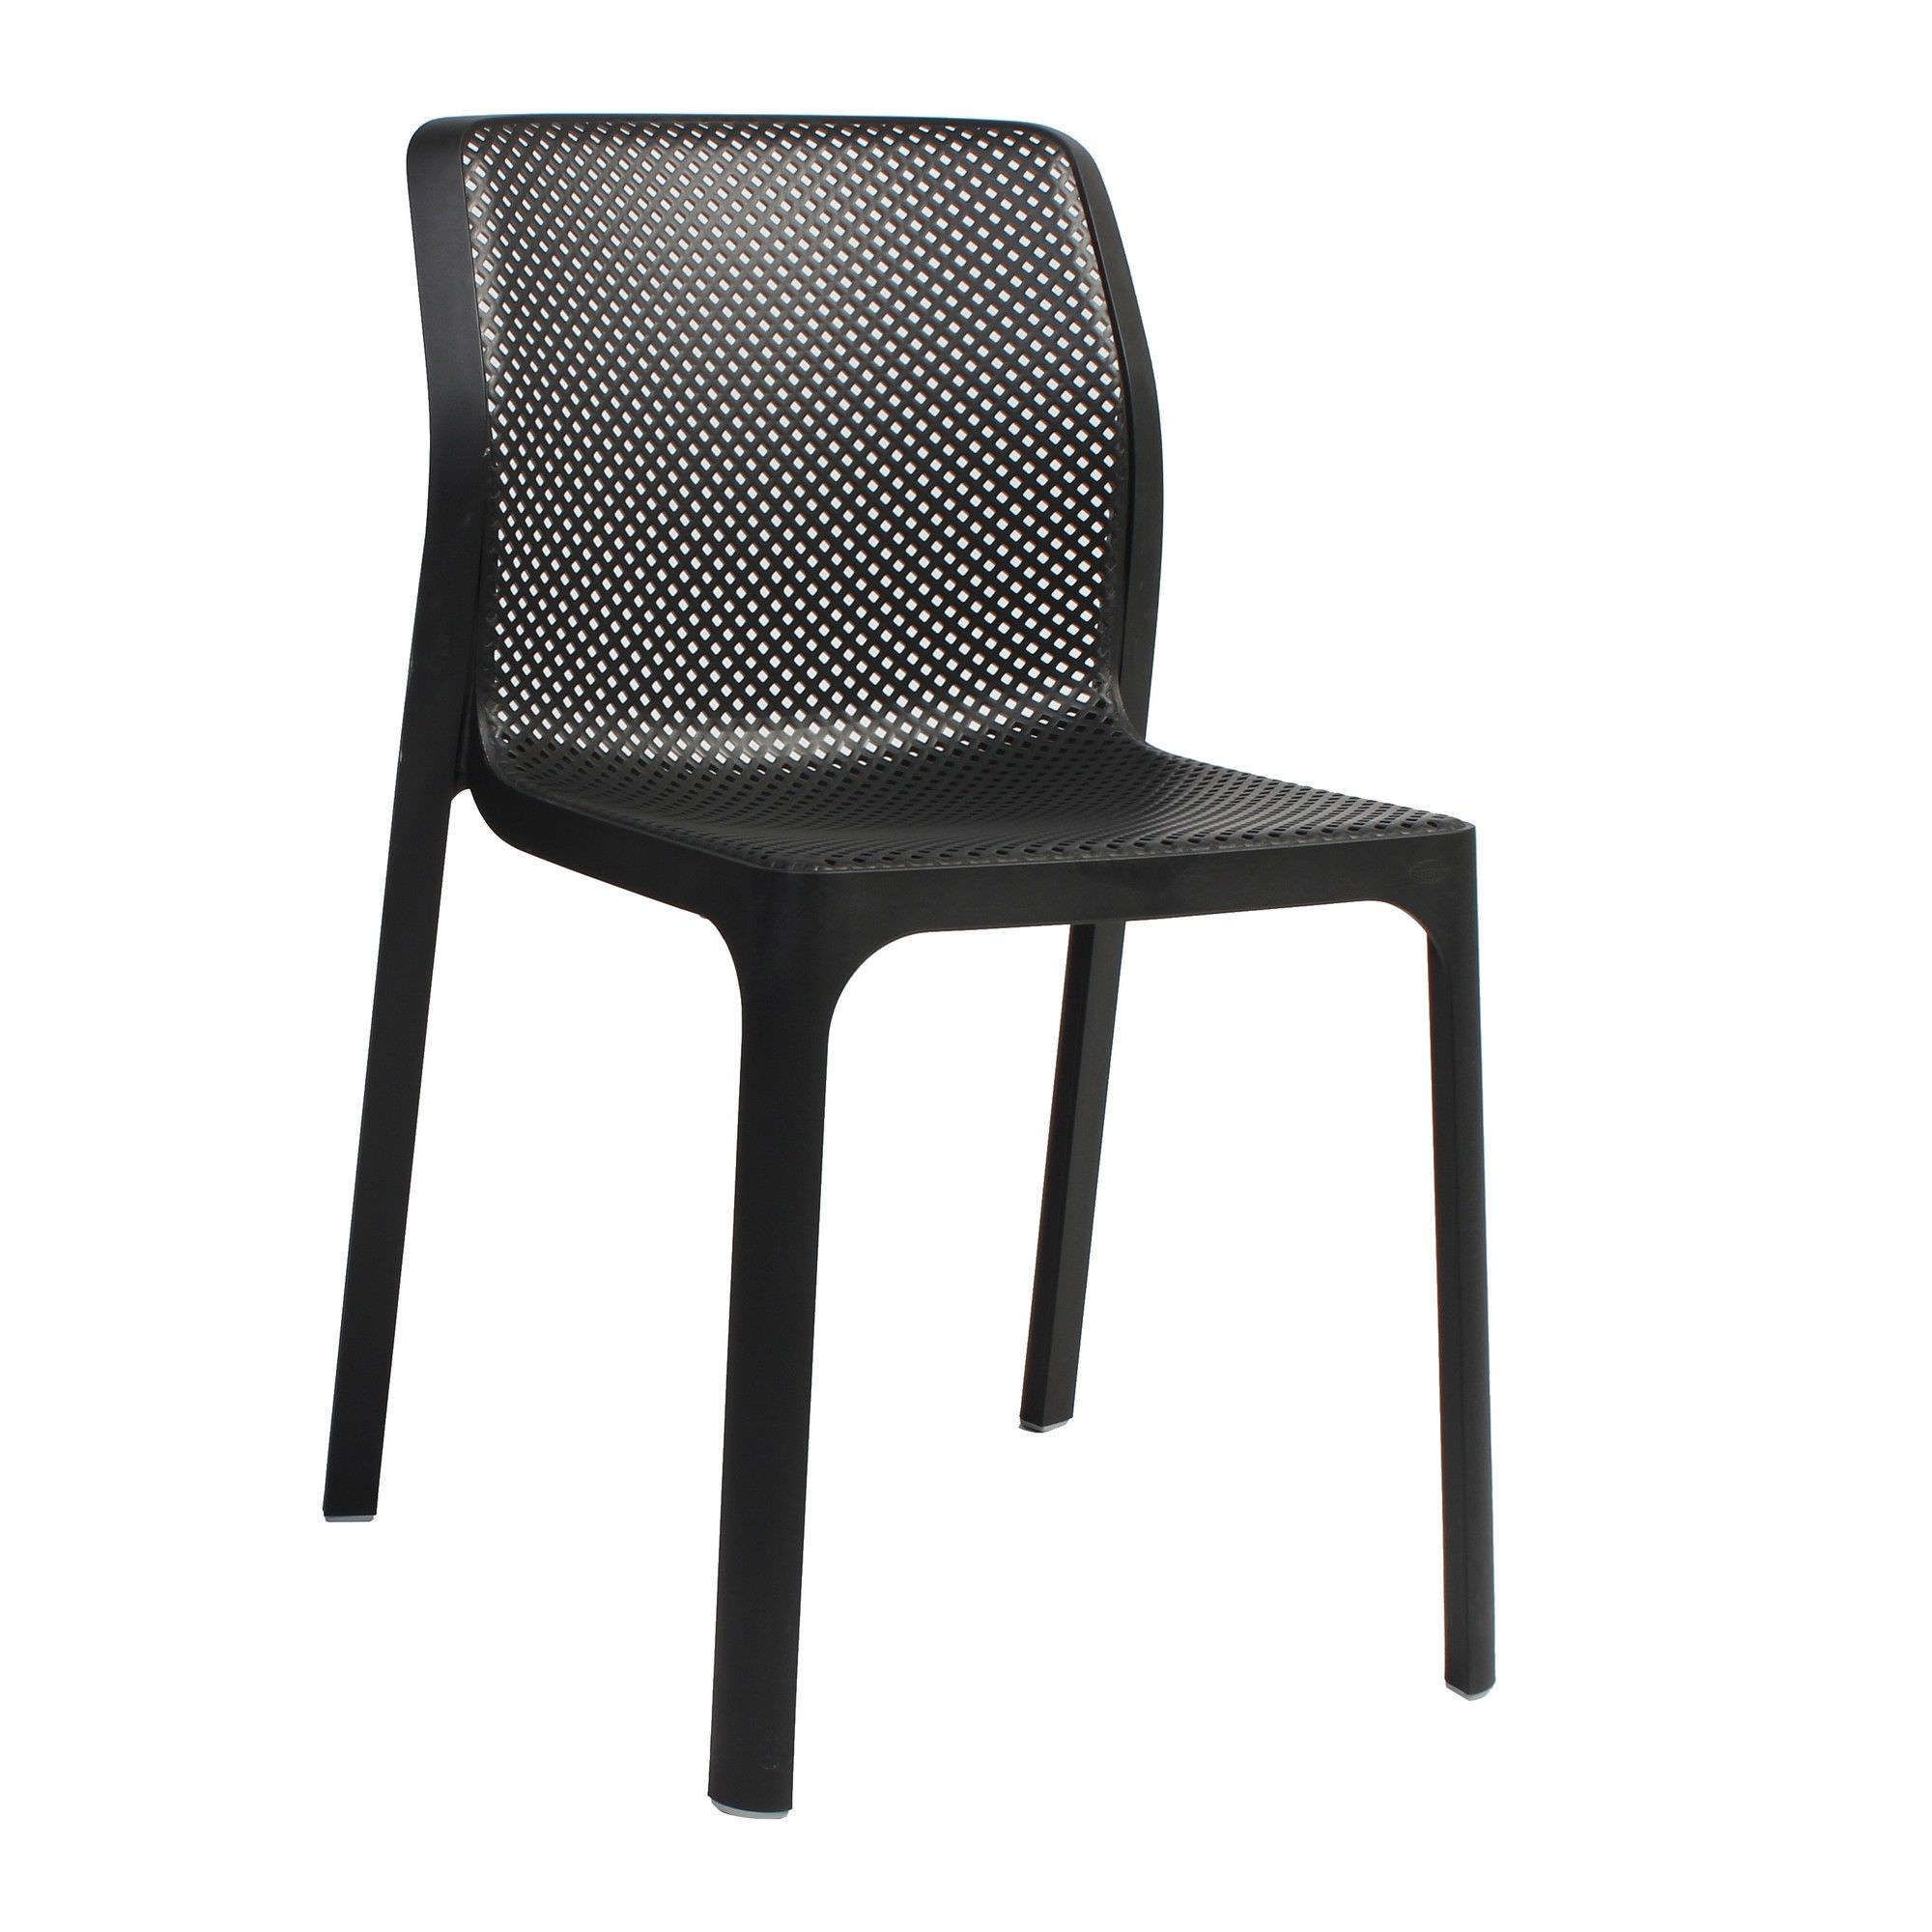 Bit Italian Made Commercial Grade Indoor/Outdoor Dining Chair, Anthracite